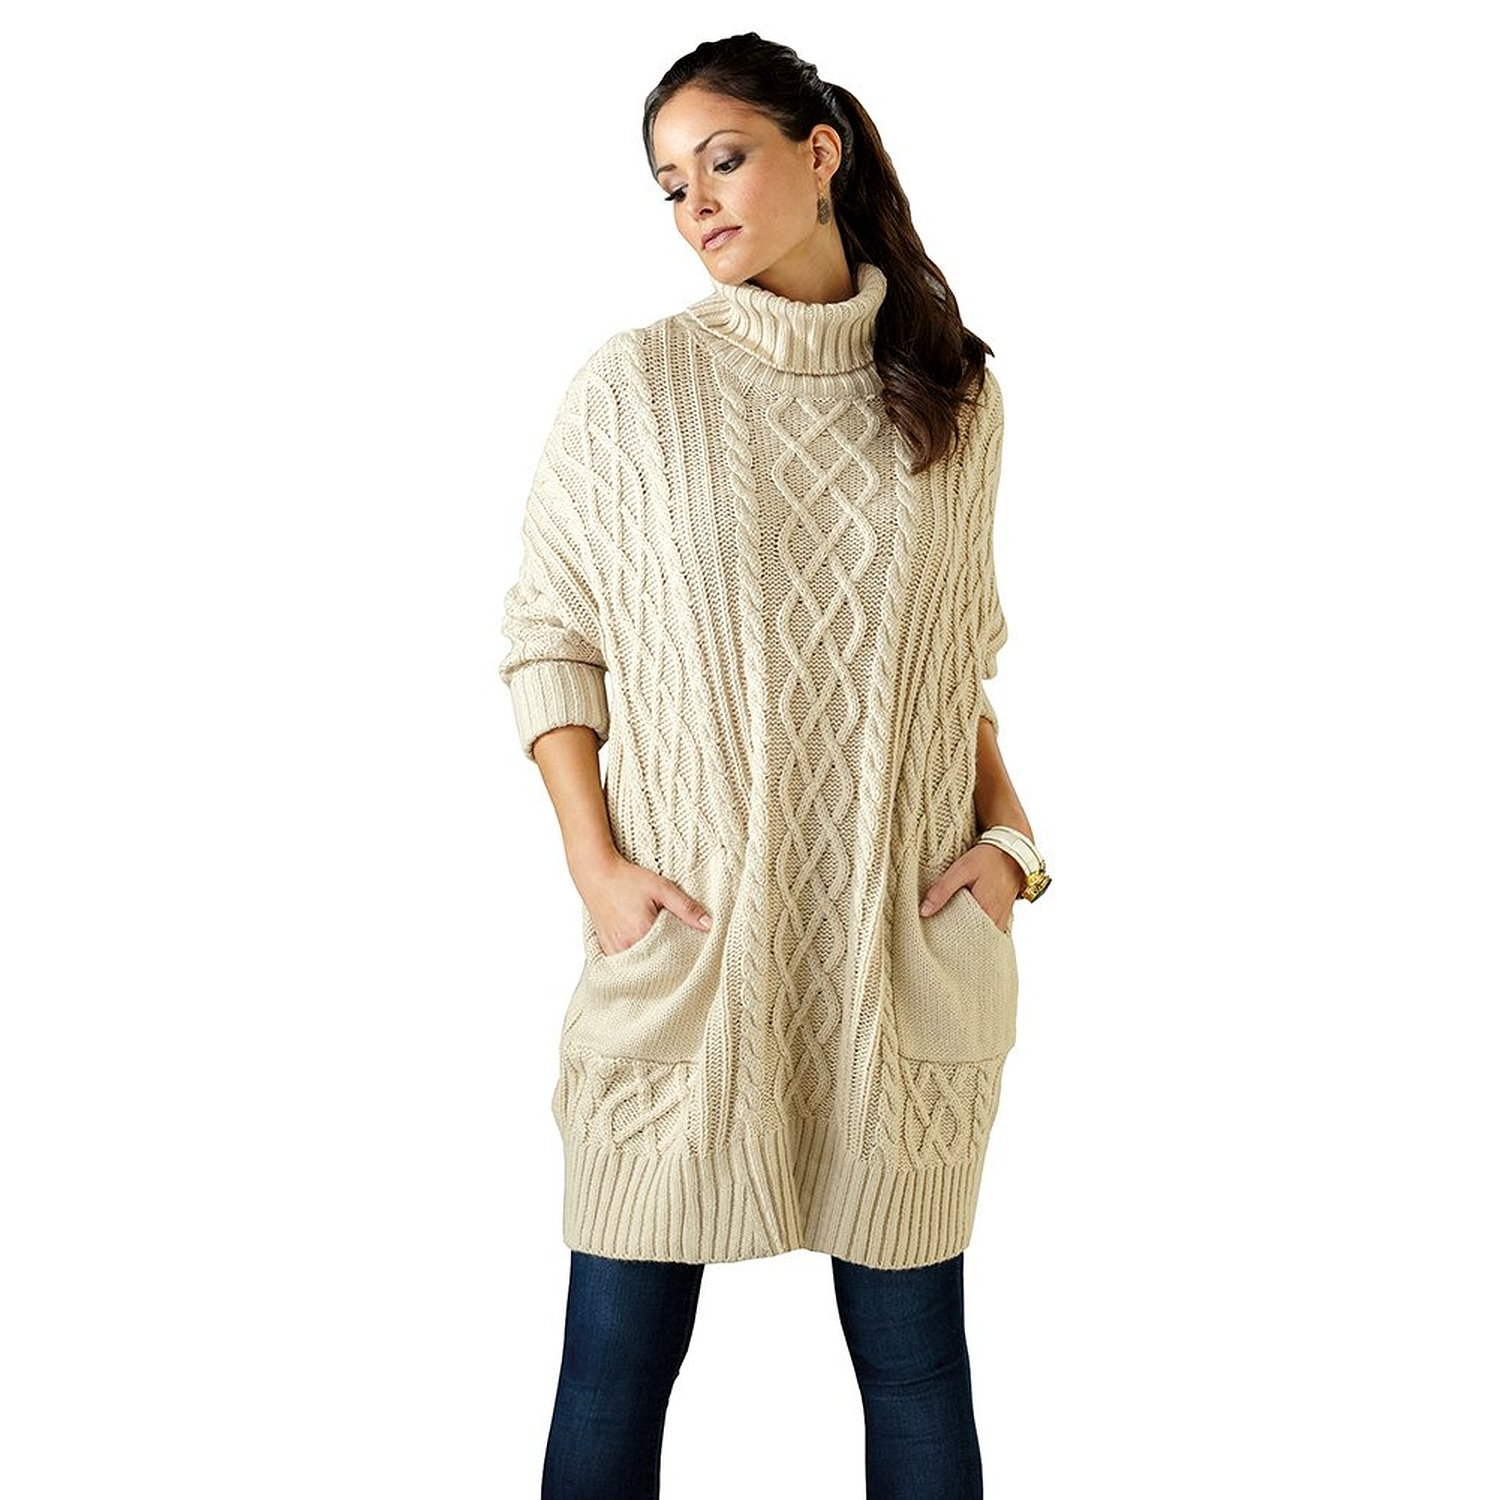 b8d012c7fa8 Aran Pullover Cowl Neck Cable Knit Sweater Dress - Cream at Amazon Women s  Clothing store